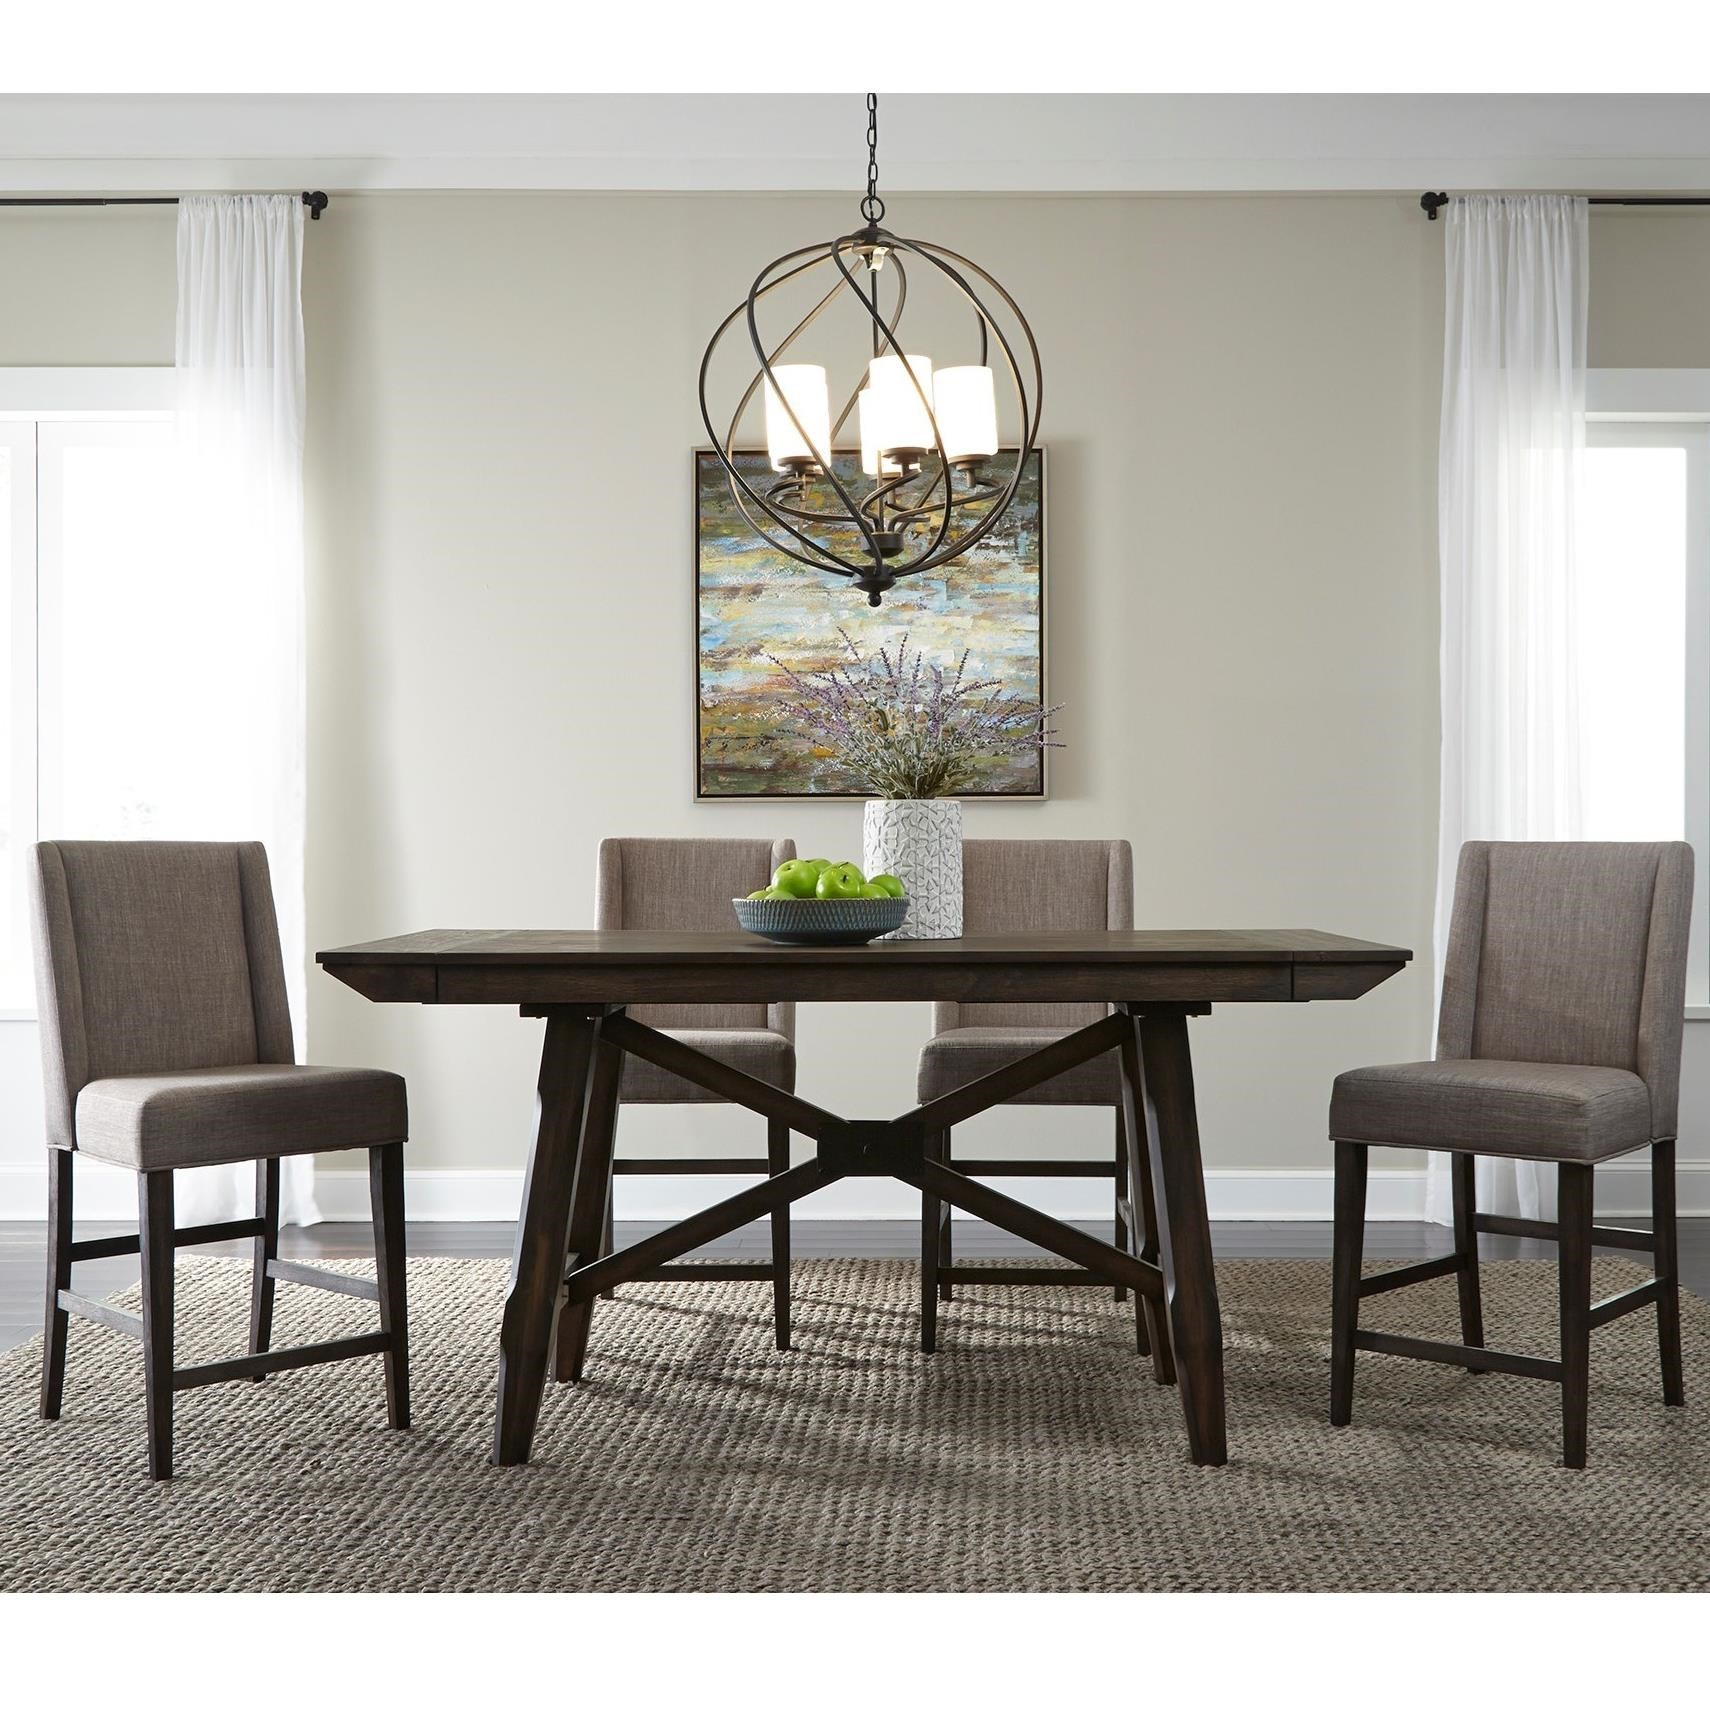 Double Bridge 5 Piece Gathering Table Set by Libby at Walker's Furniture